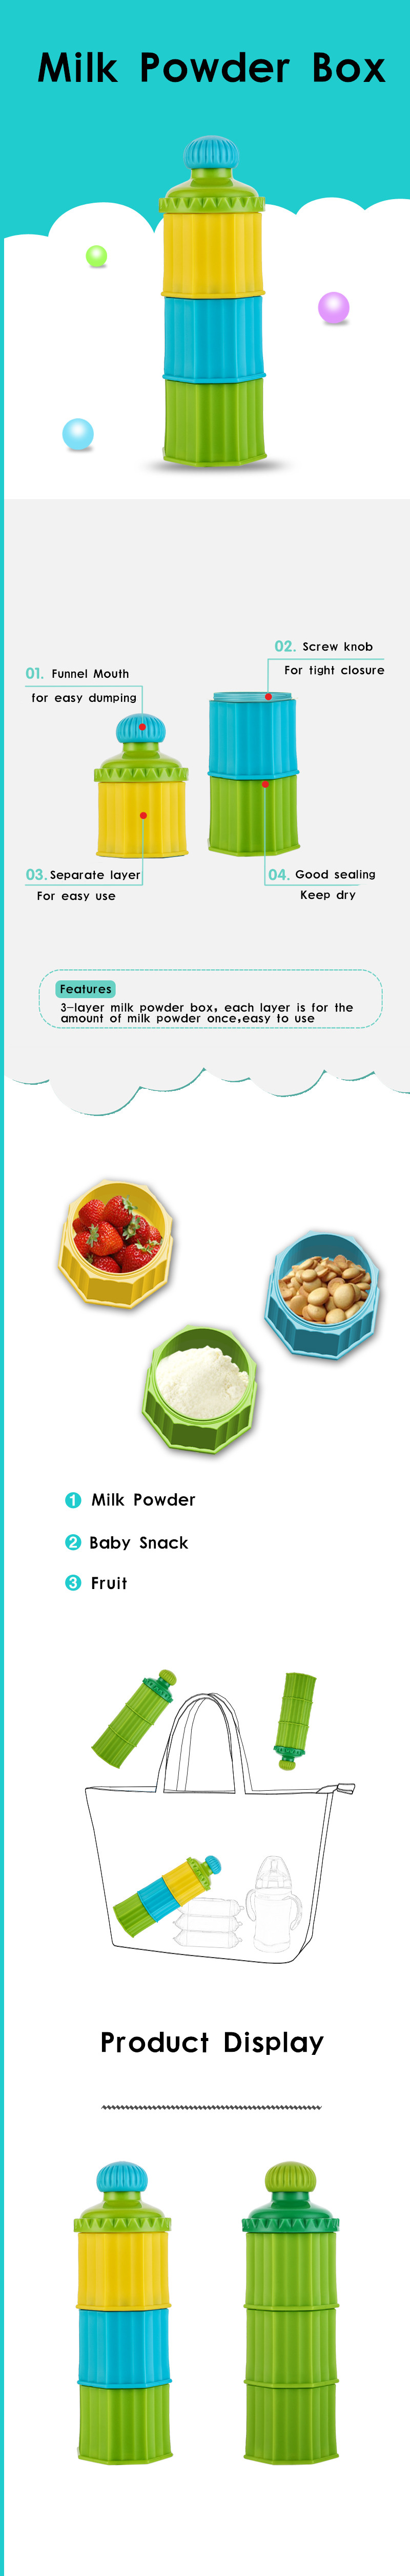 3 Layers Milk powder box Minitree Factory Portable baby infant food feeding container  Storage Eco-friendly BPA free